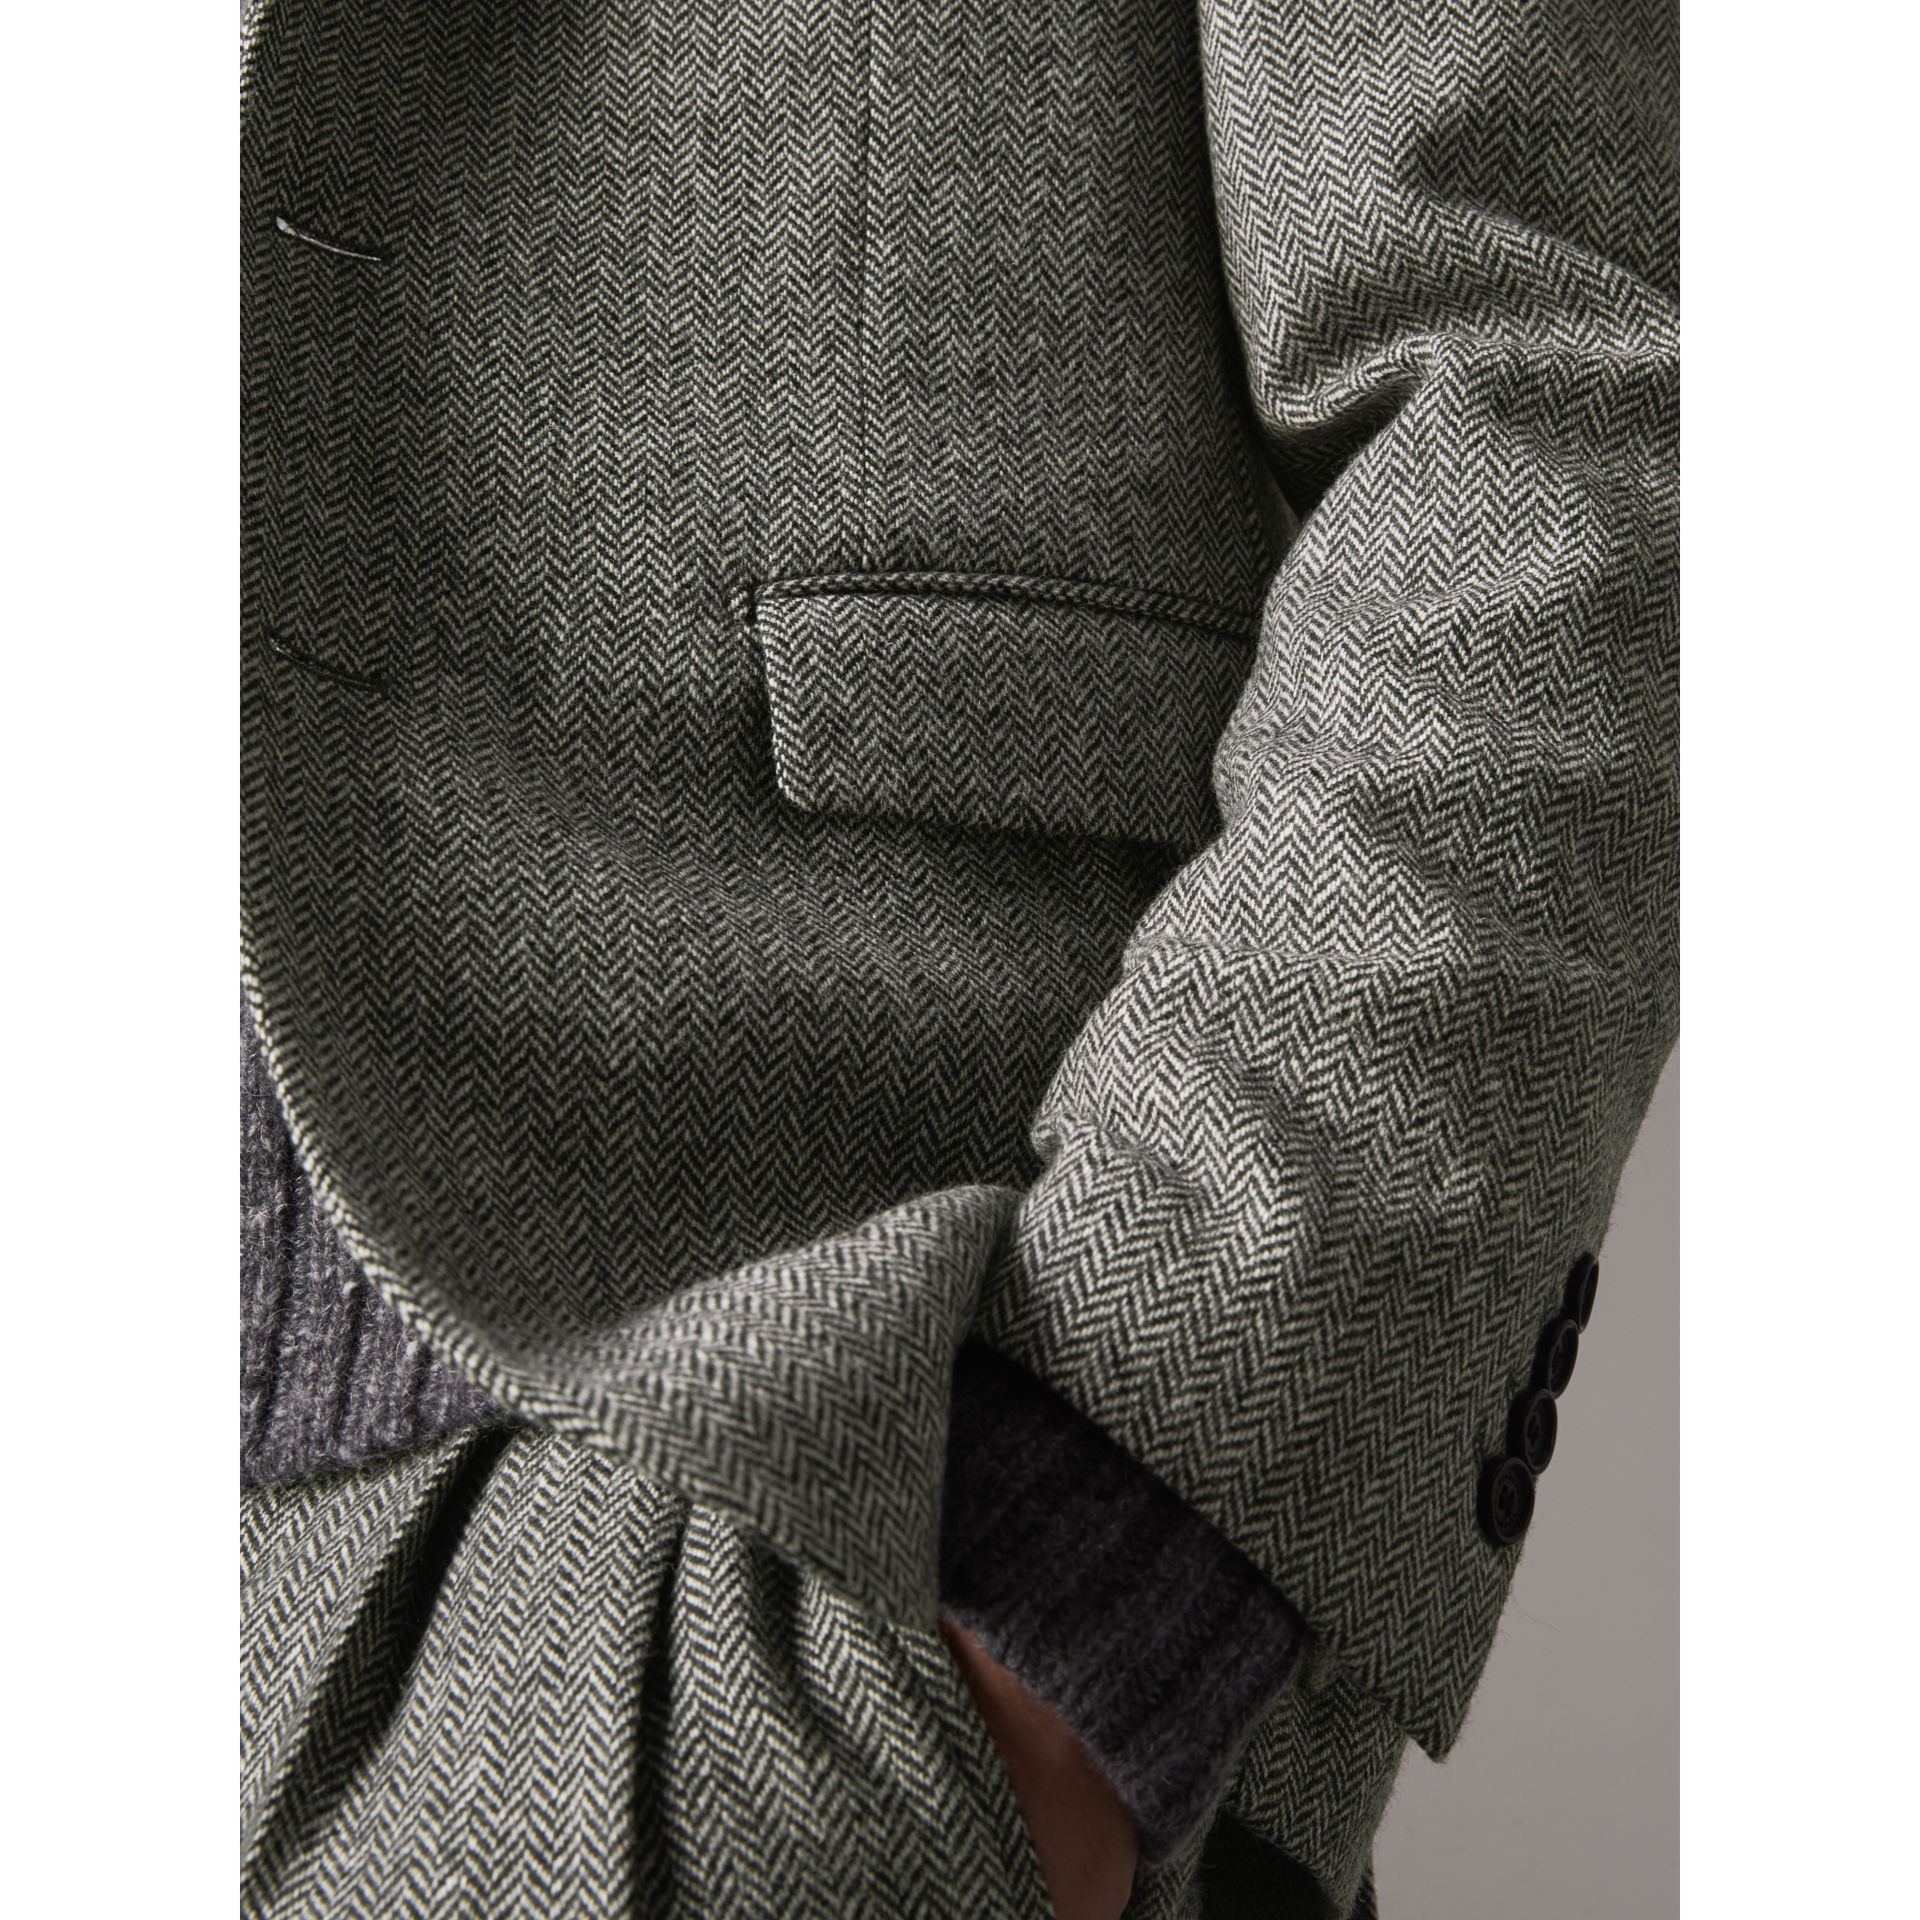 Soho Fit Herringbone Wool Tailored Jacket in Black / White - Men | Burberry - gallery image 4